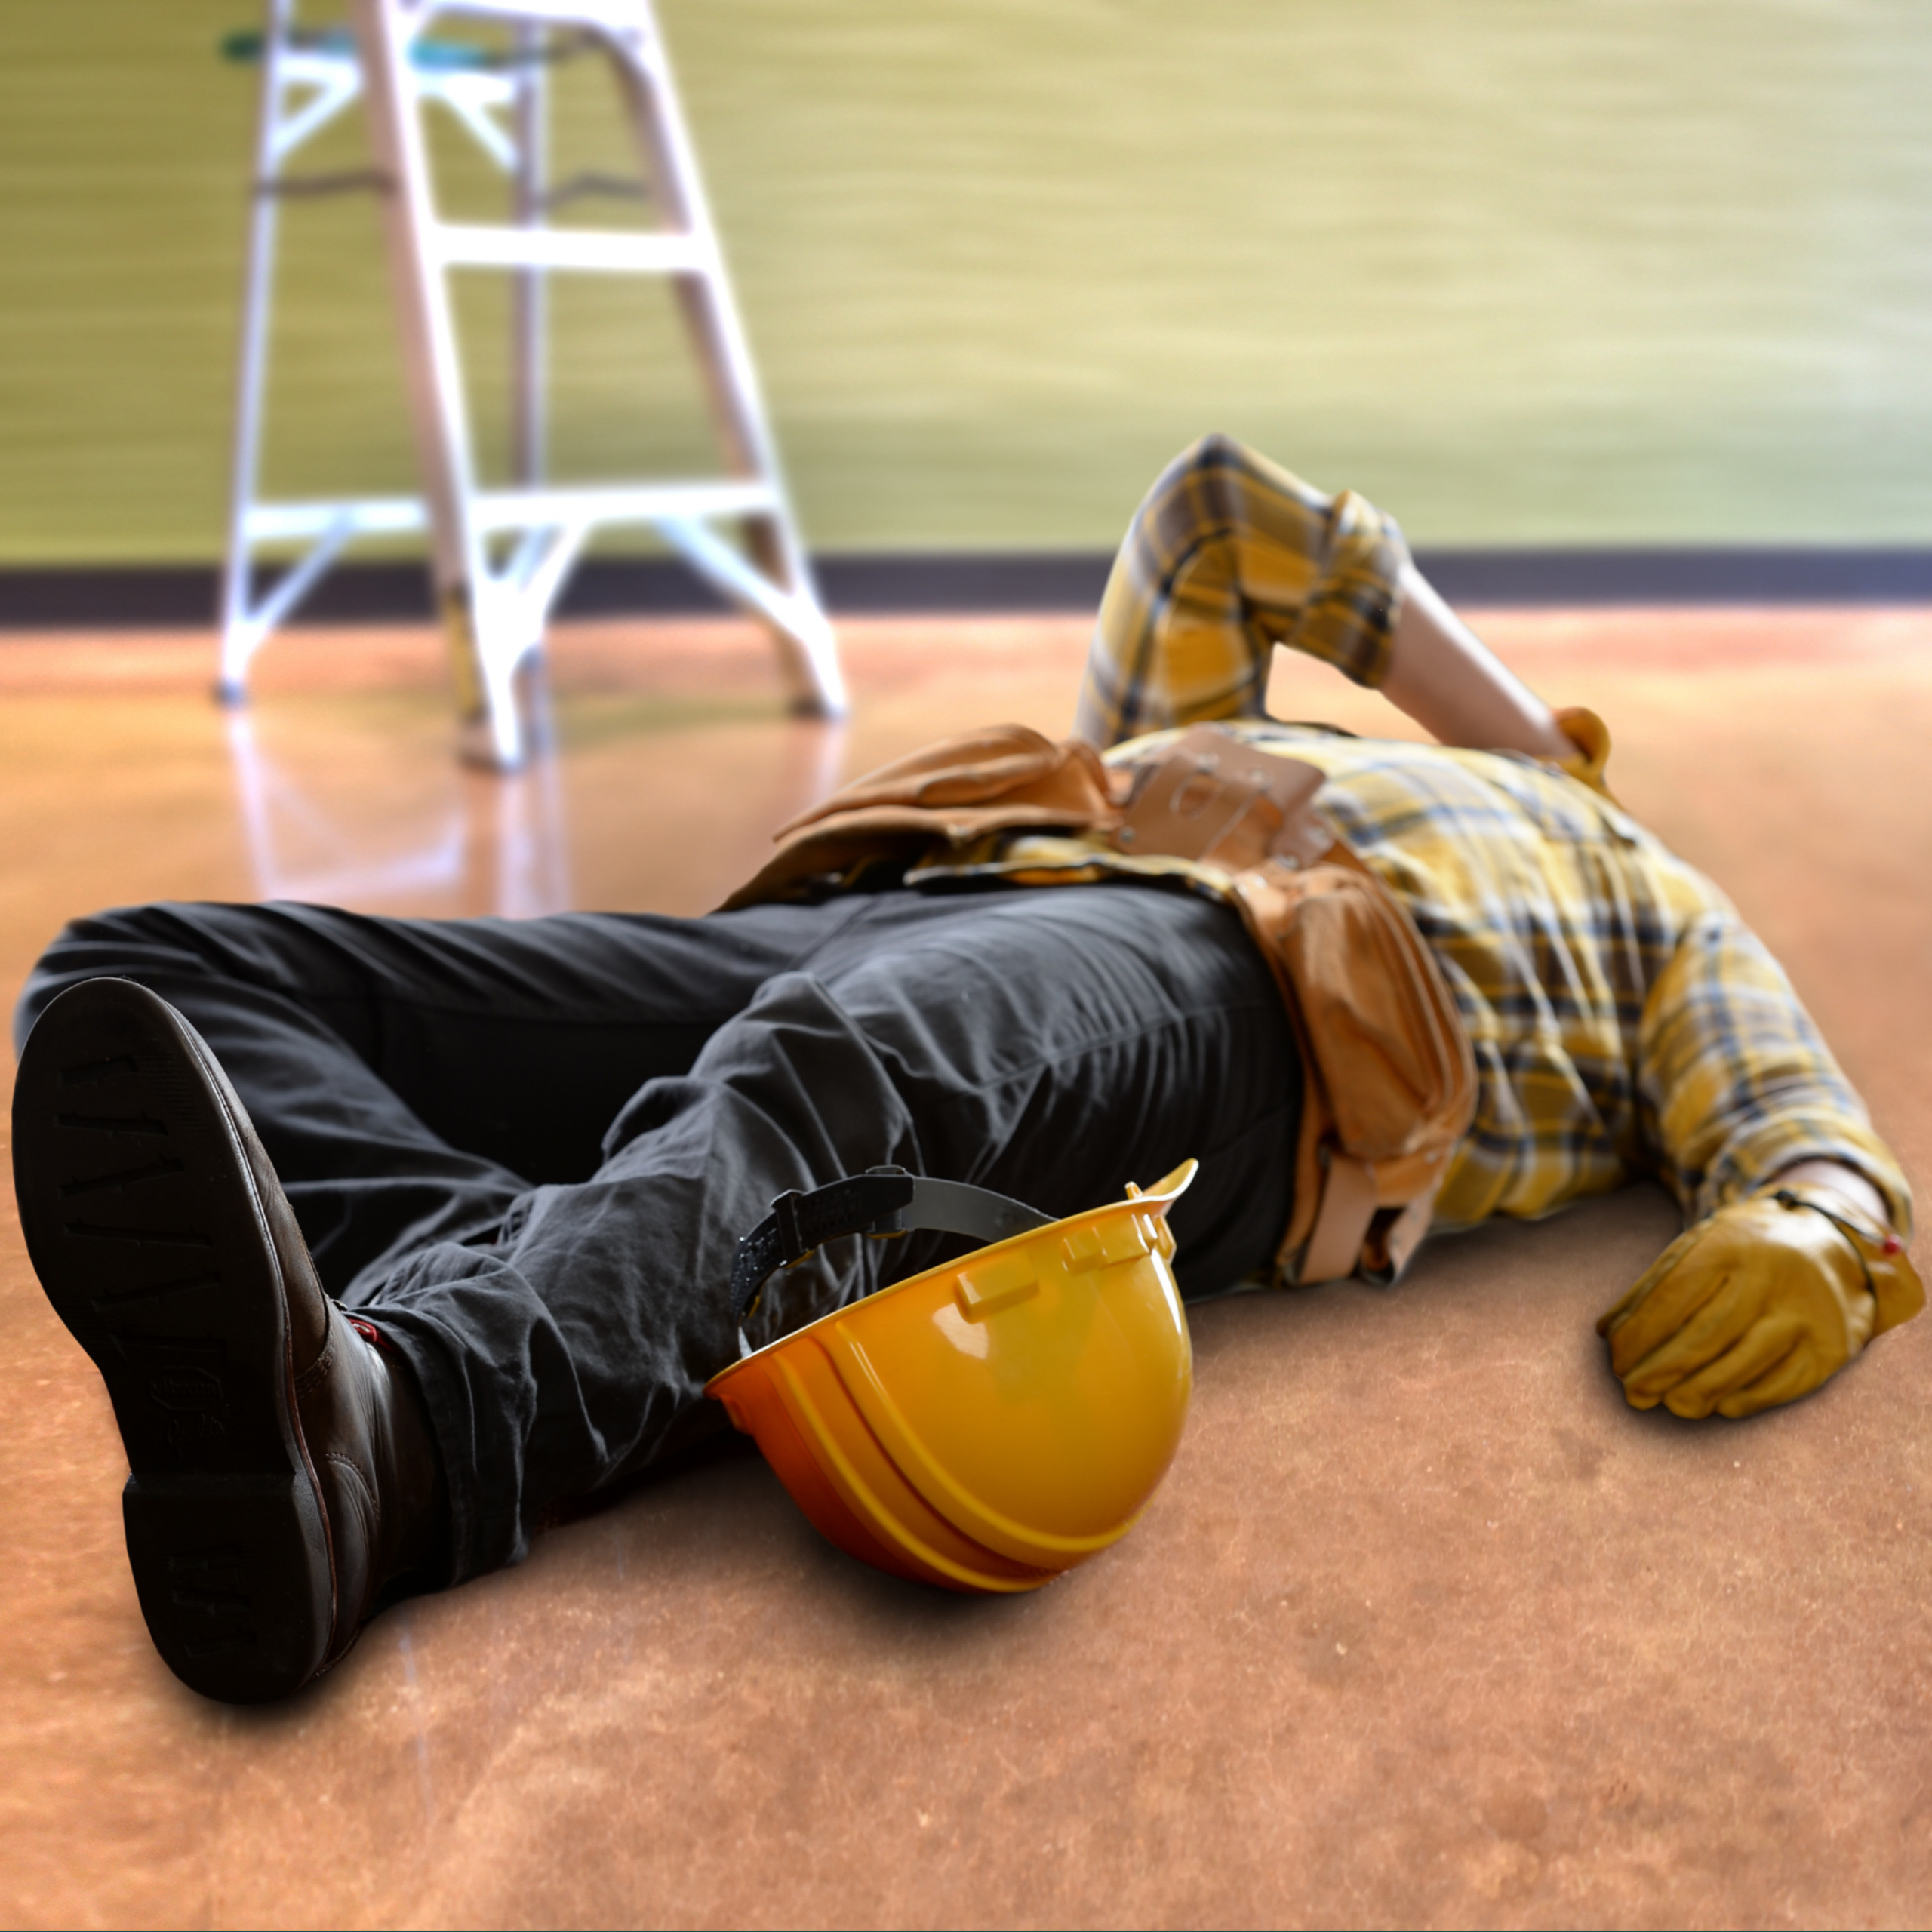 Slip and Fall Prevention Tips